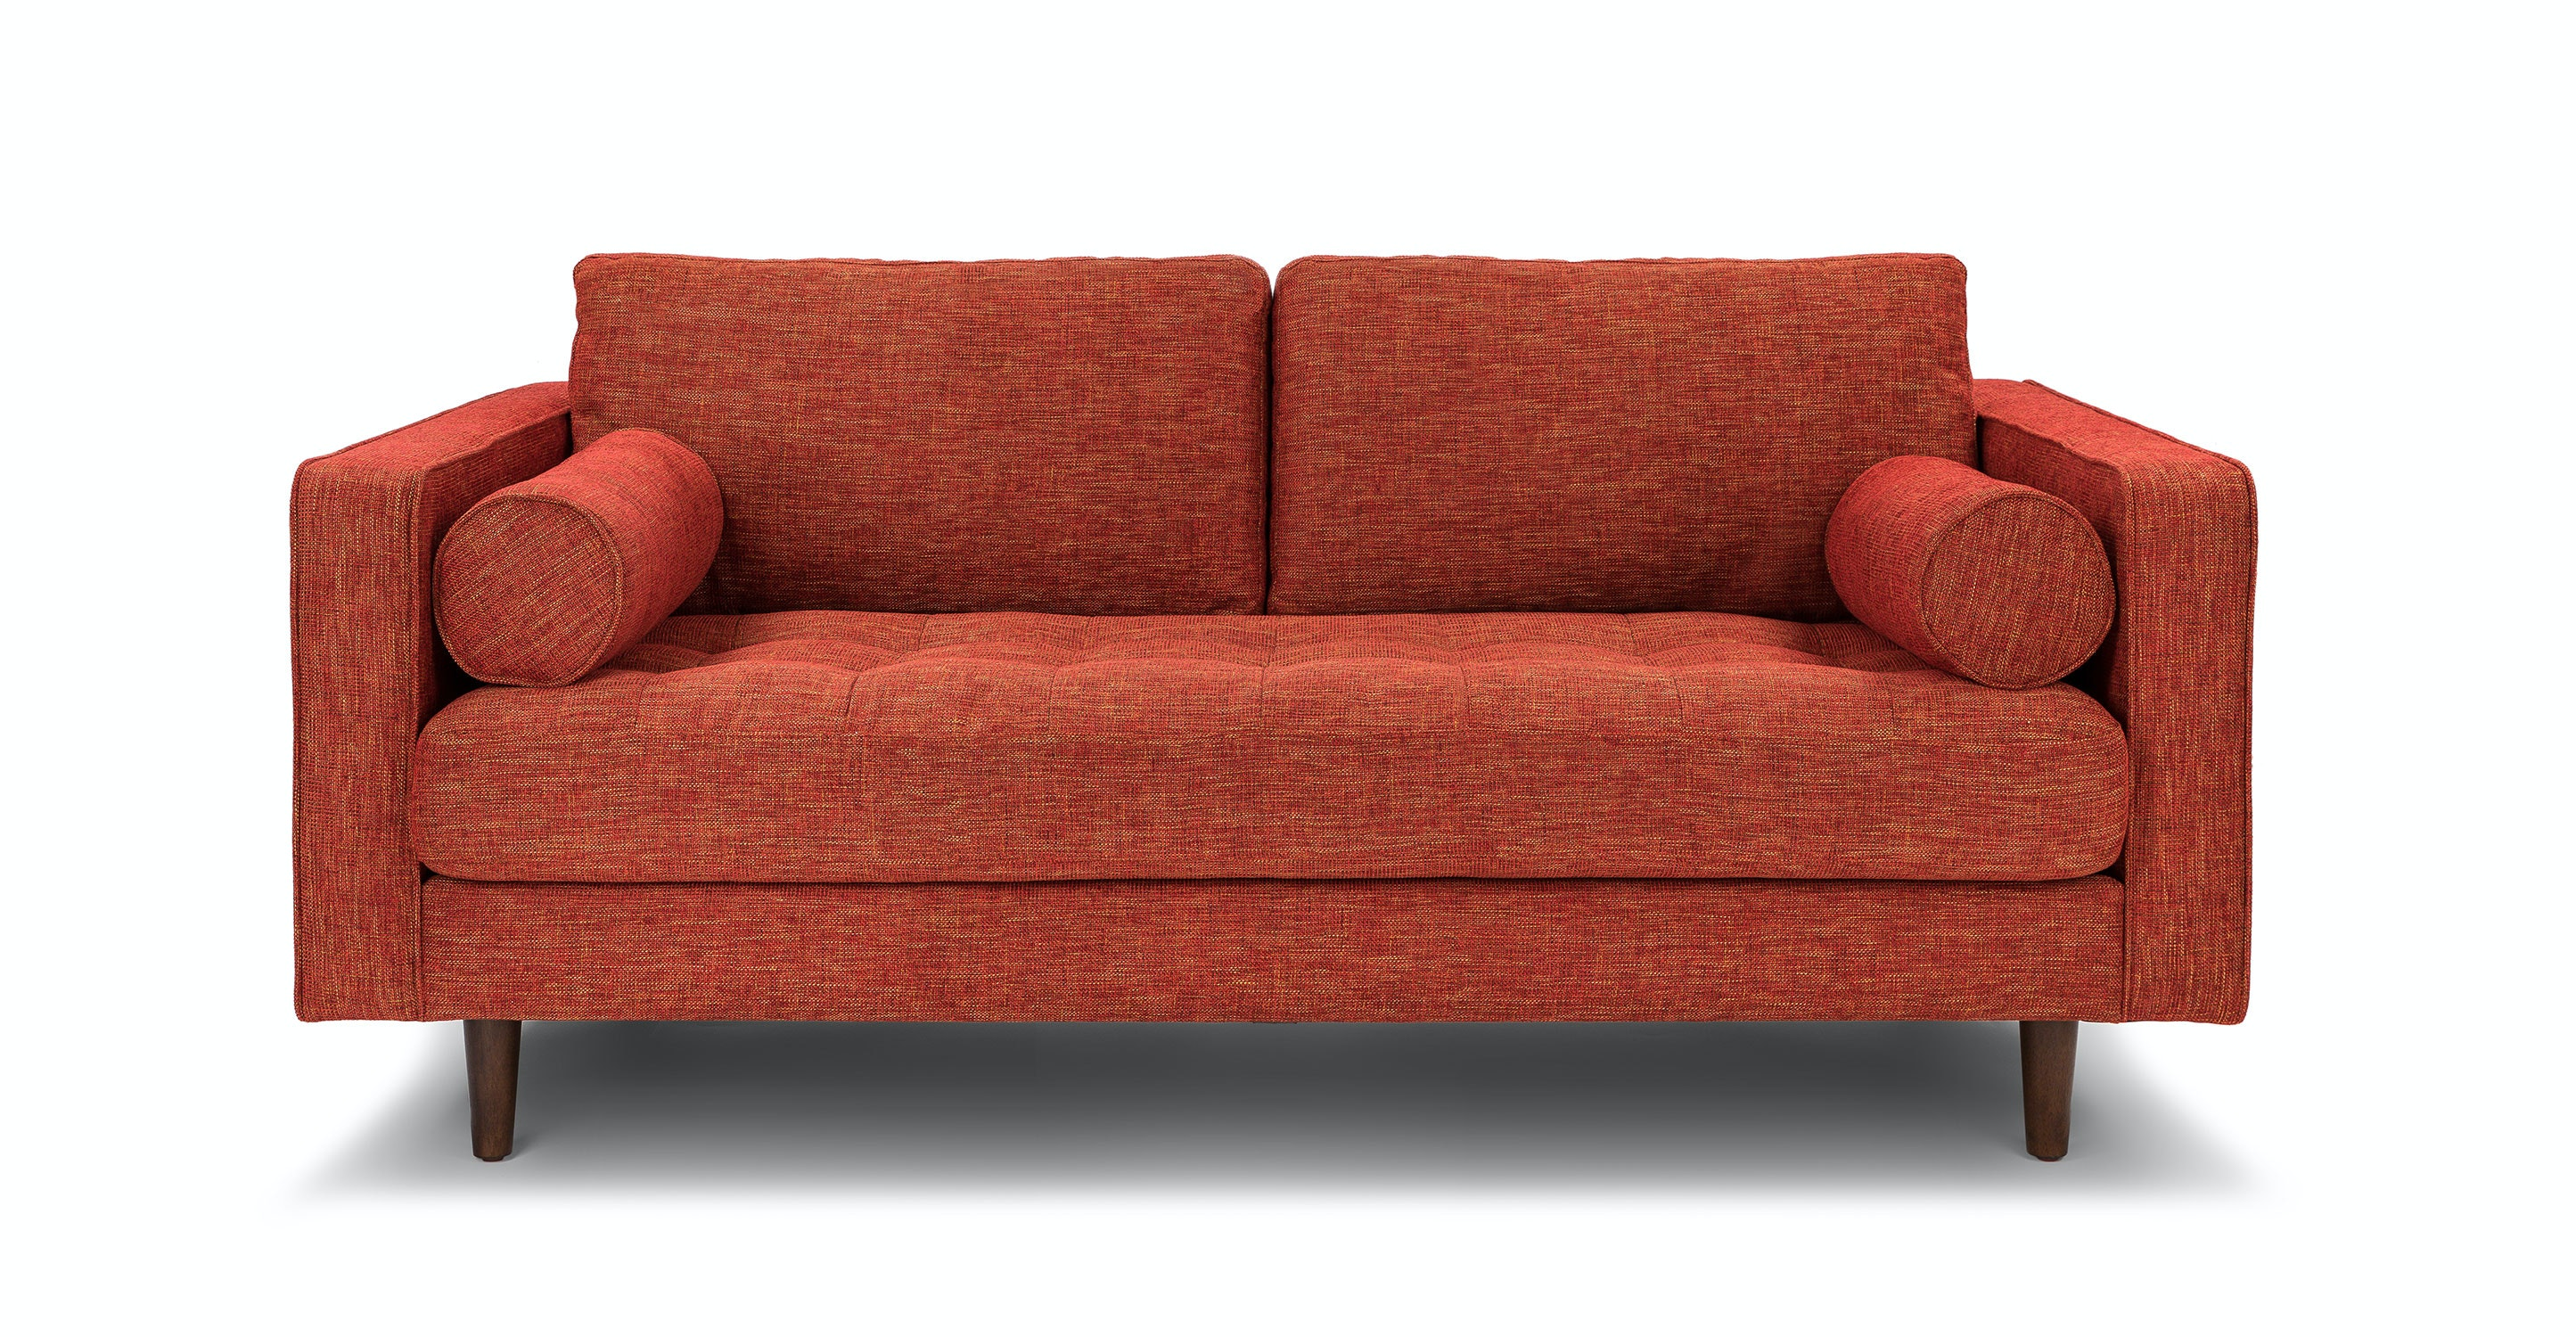 Orange Sofa Chair Knopparp Sofa Orange Ikea Thesofa